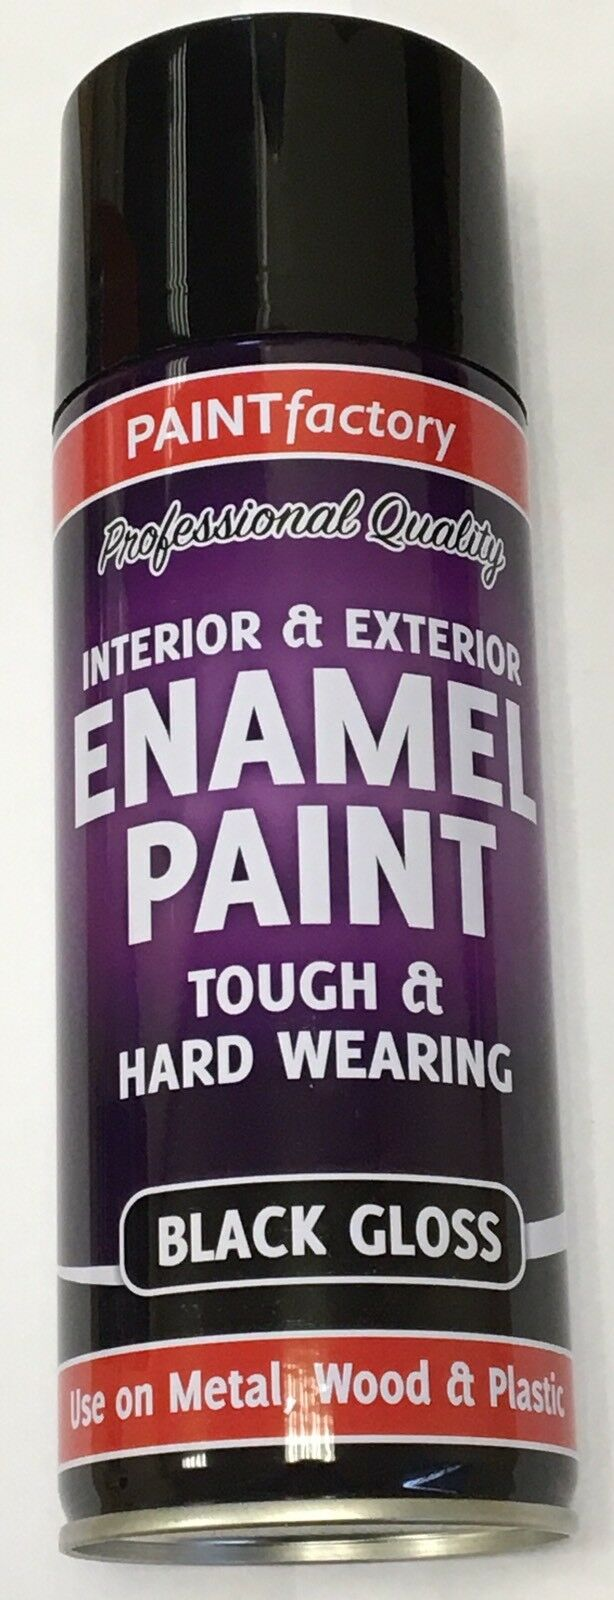 1 x Enamel Black Gloss Paint Spray Aerosol 400ml Radiator Metal Wood Etc. Tough